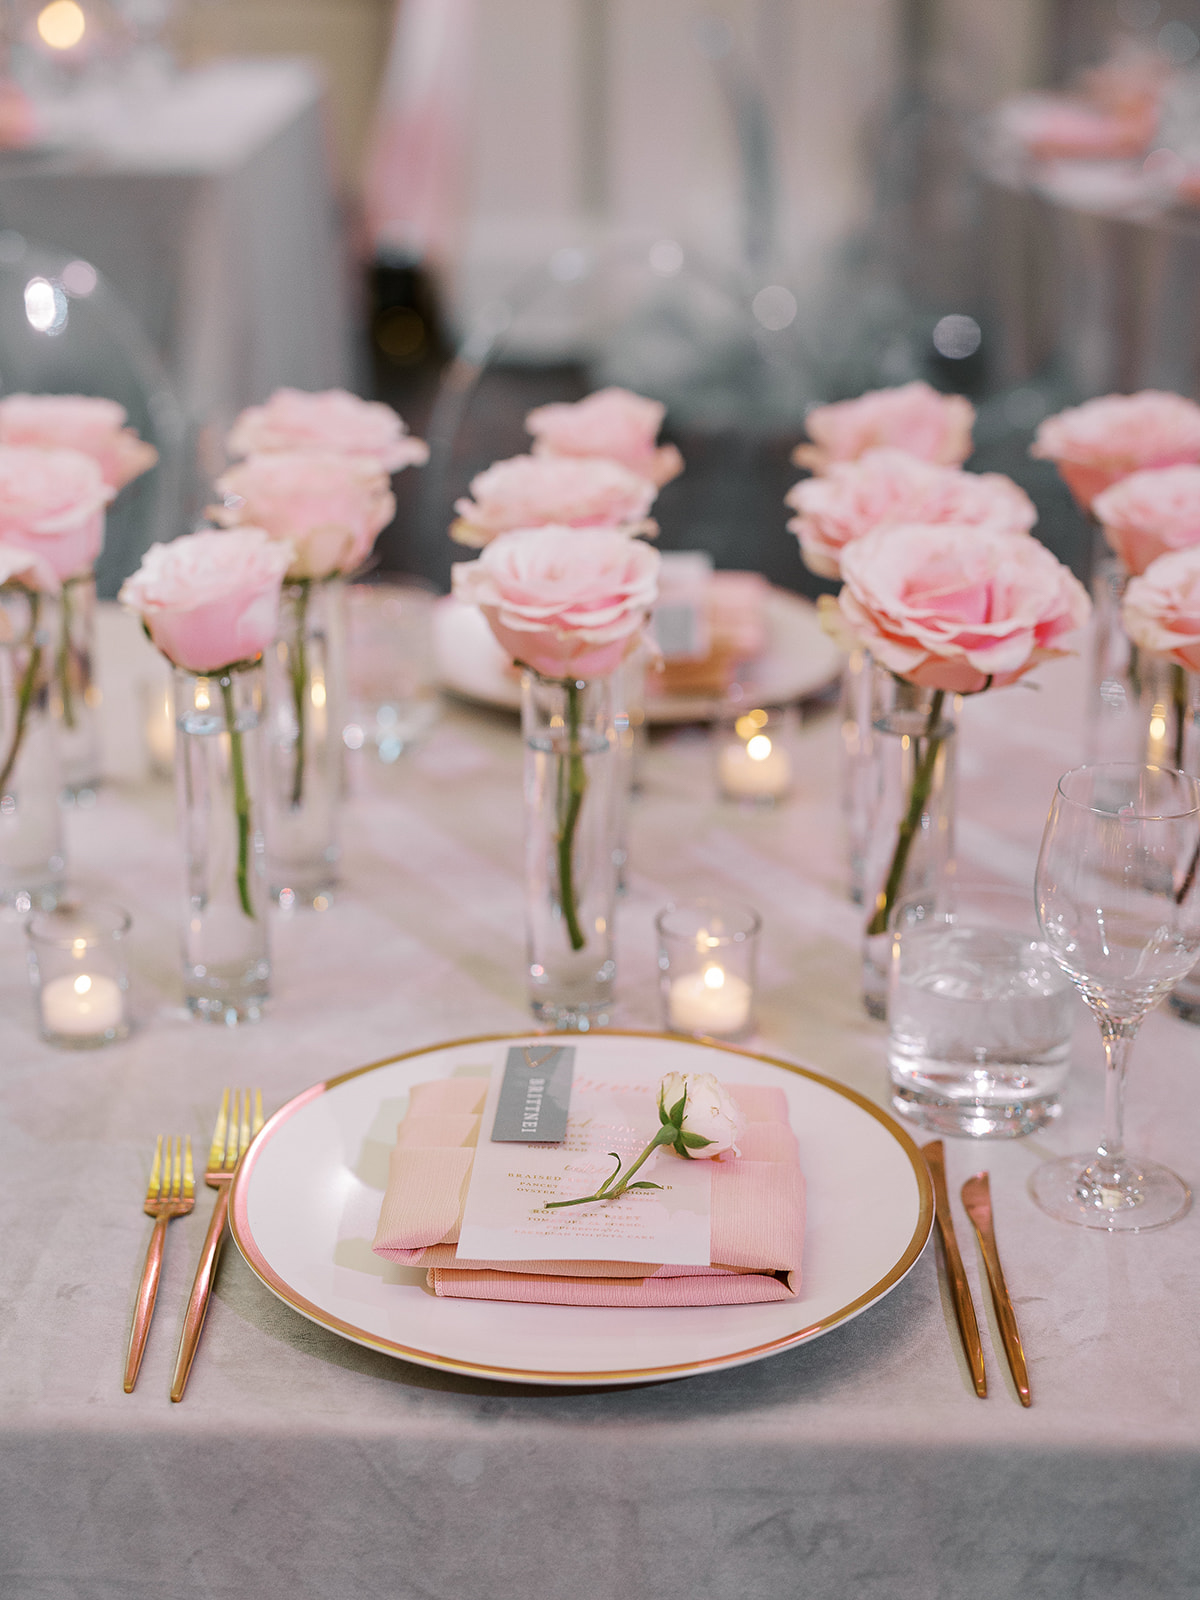 place settings with pink roses